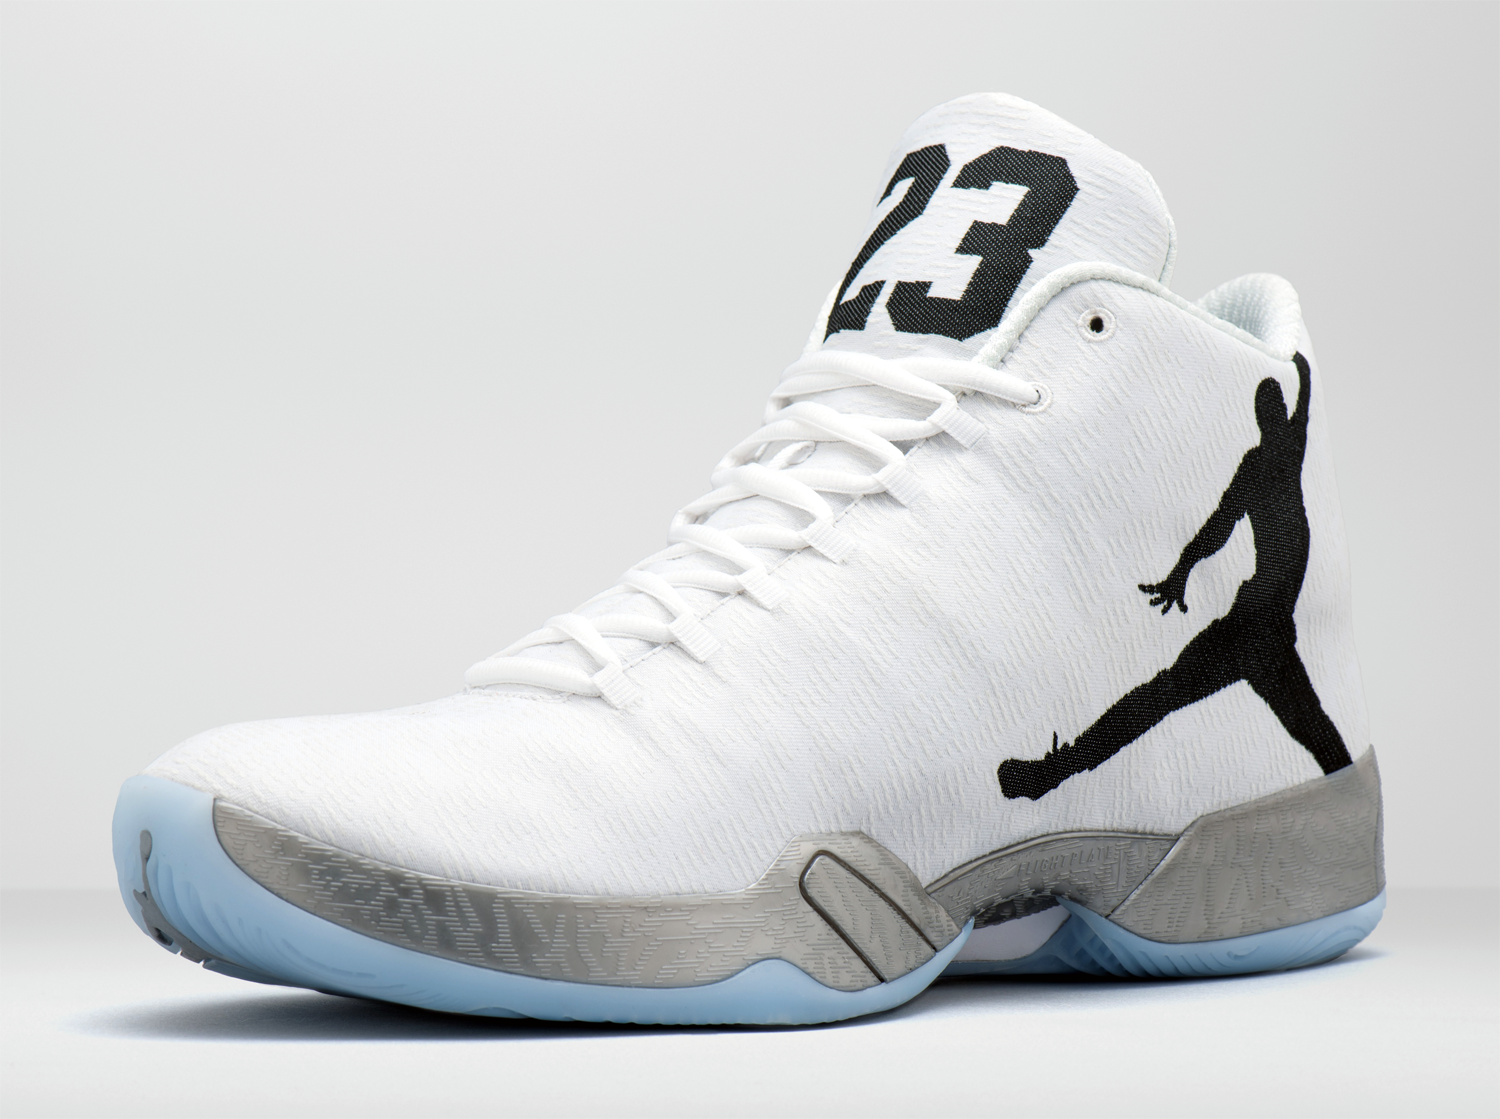 reputable site 28cfe 7ff02 Air Jordan XX9. Air Jordan XX9 Sneakers Nike ...